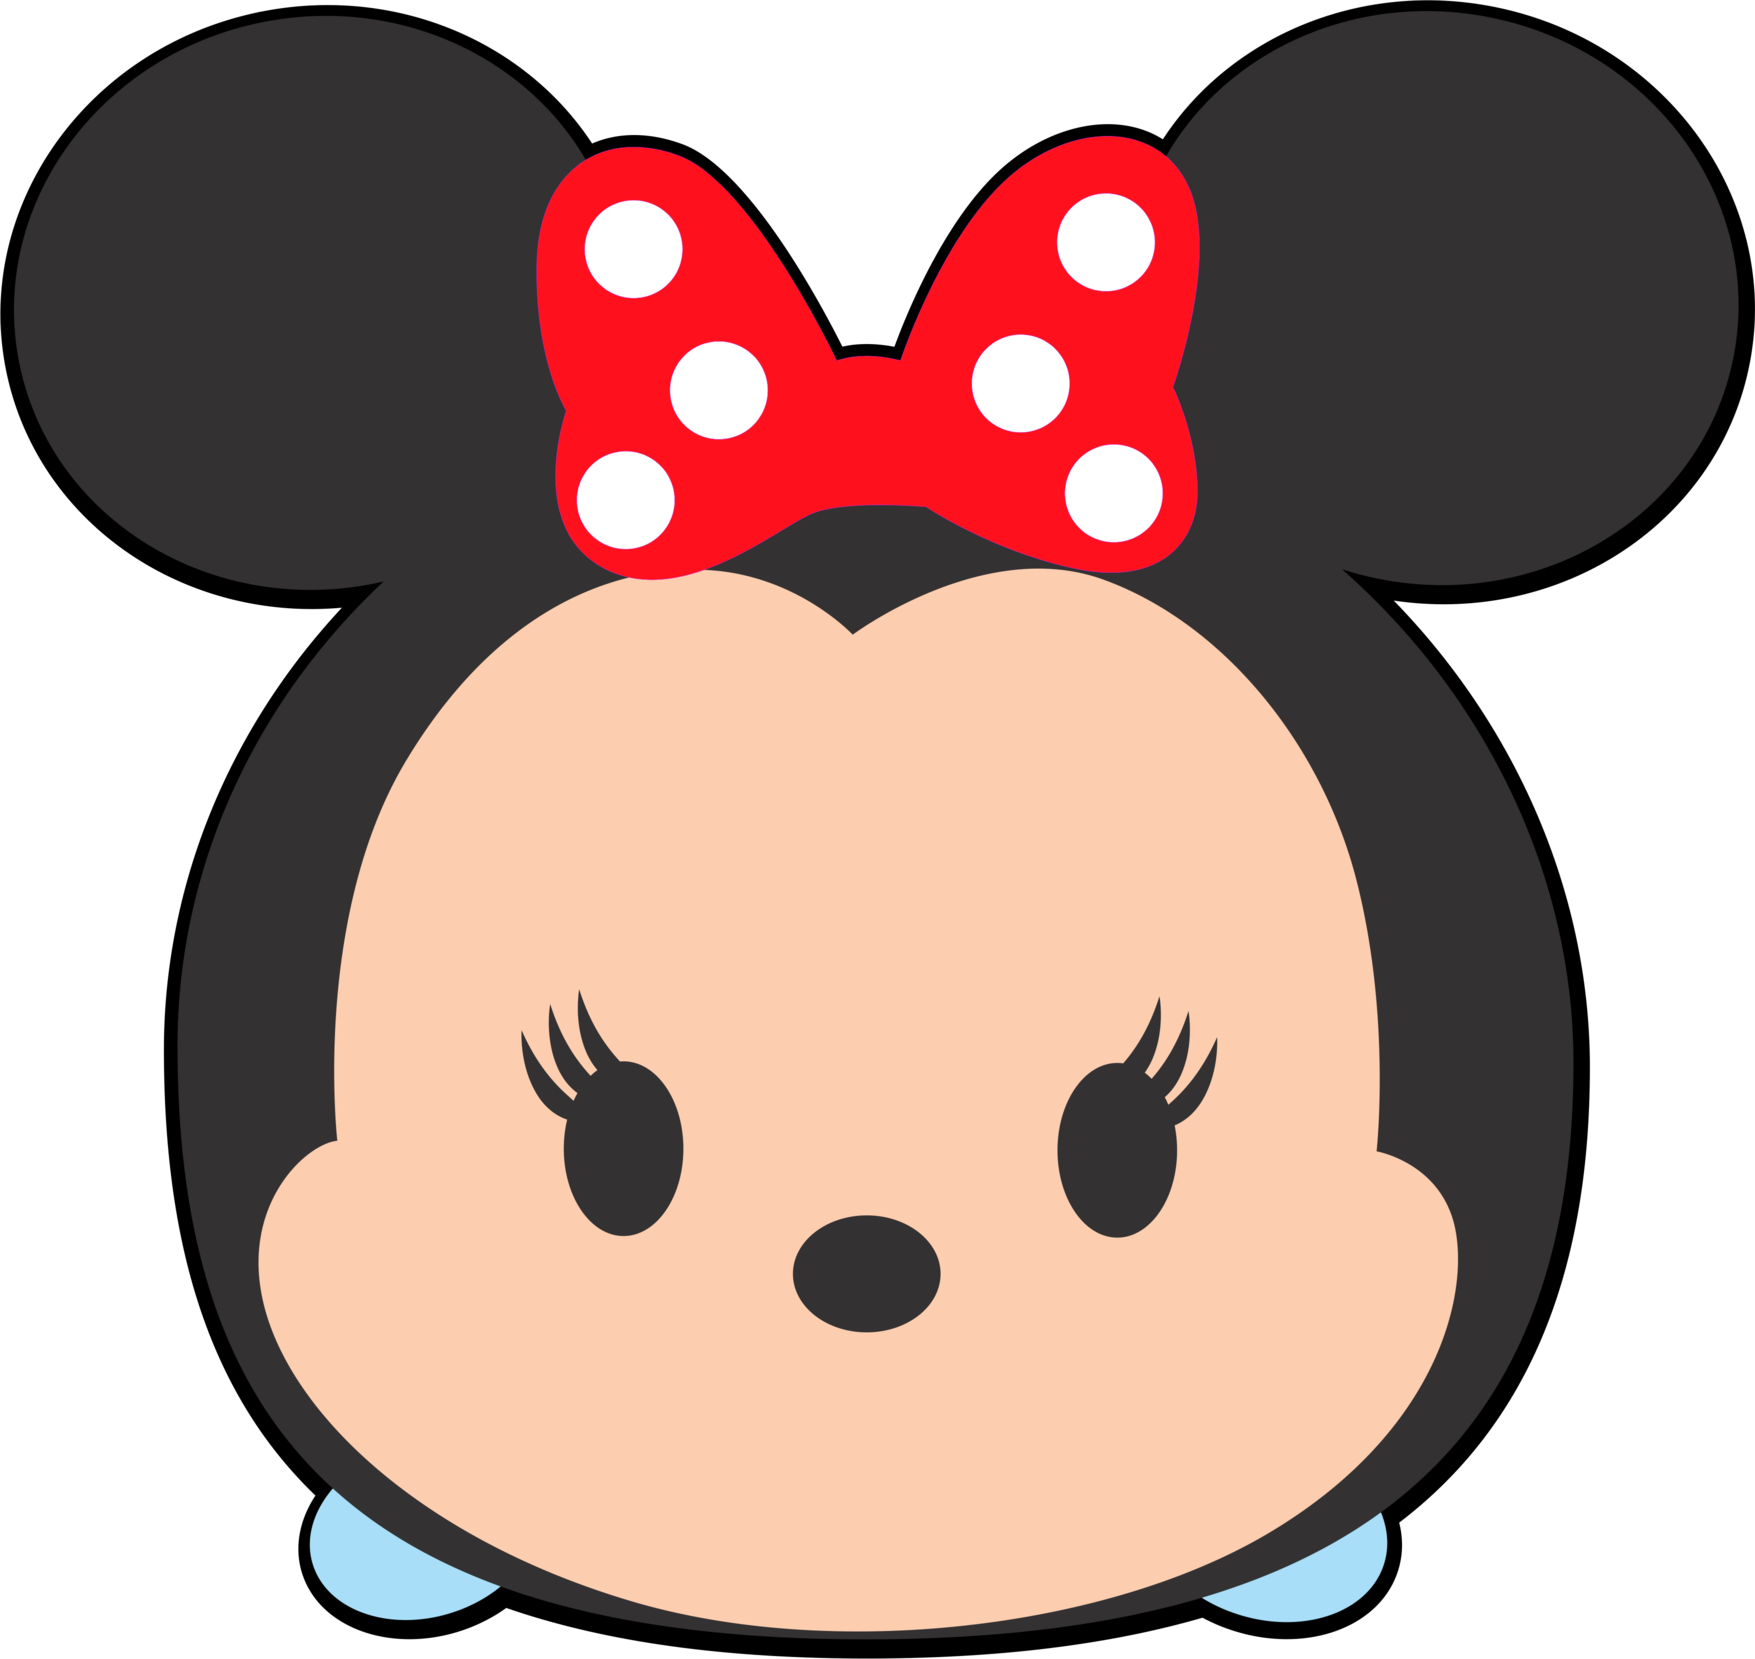 Disney Tsum Tsum Clipart Minnie Mouse.